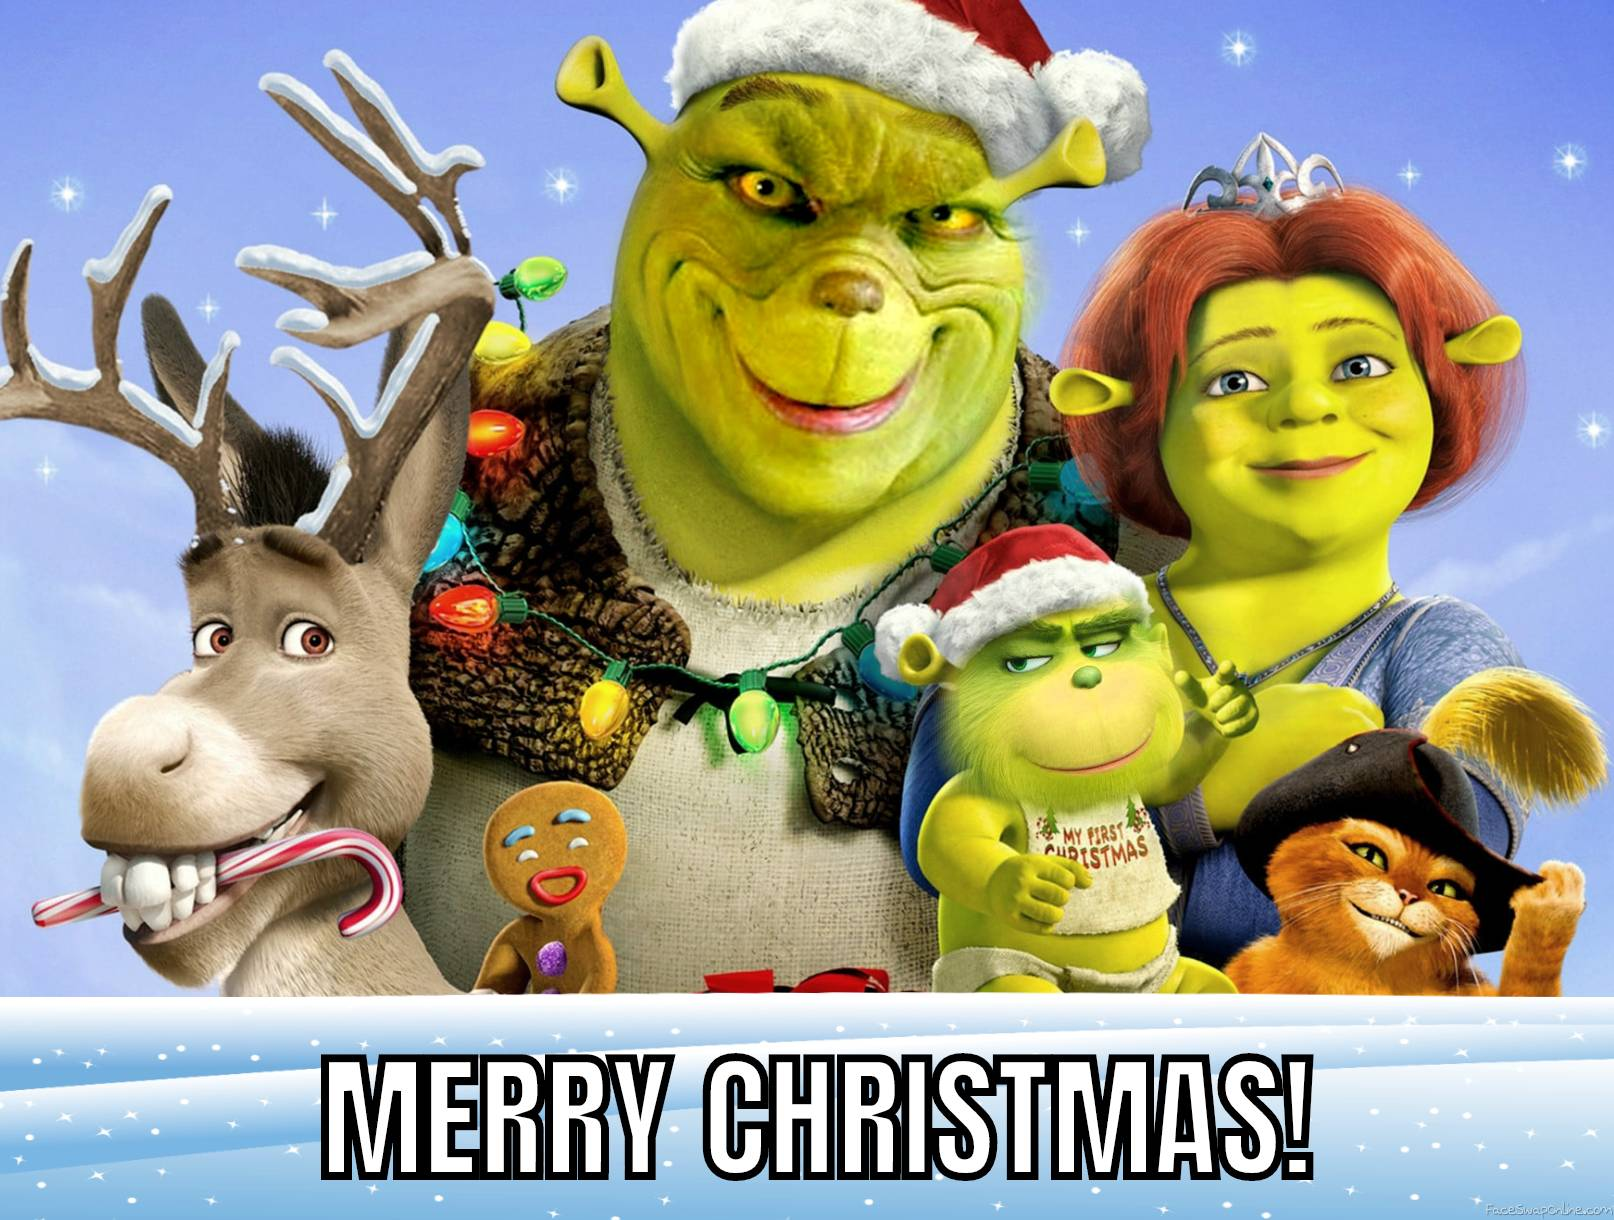 Grinch Stole the Shrek Family